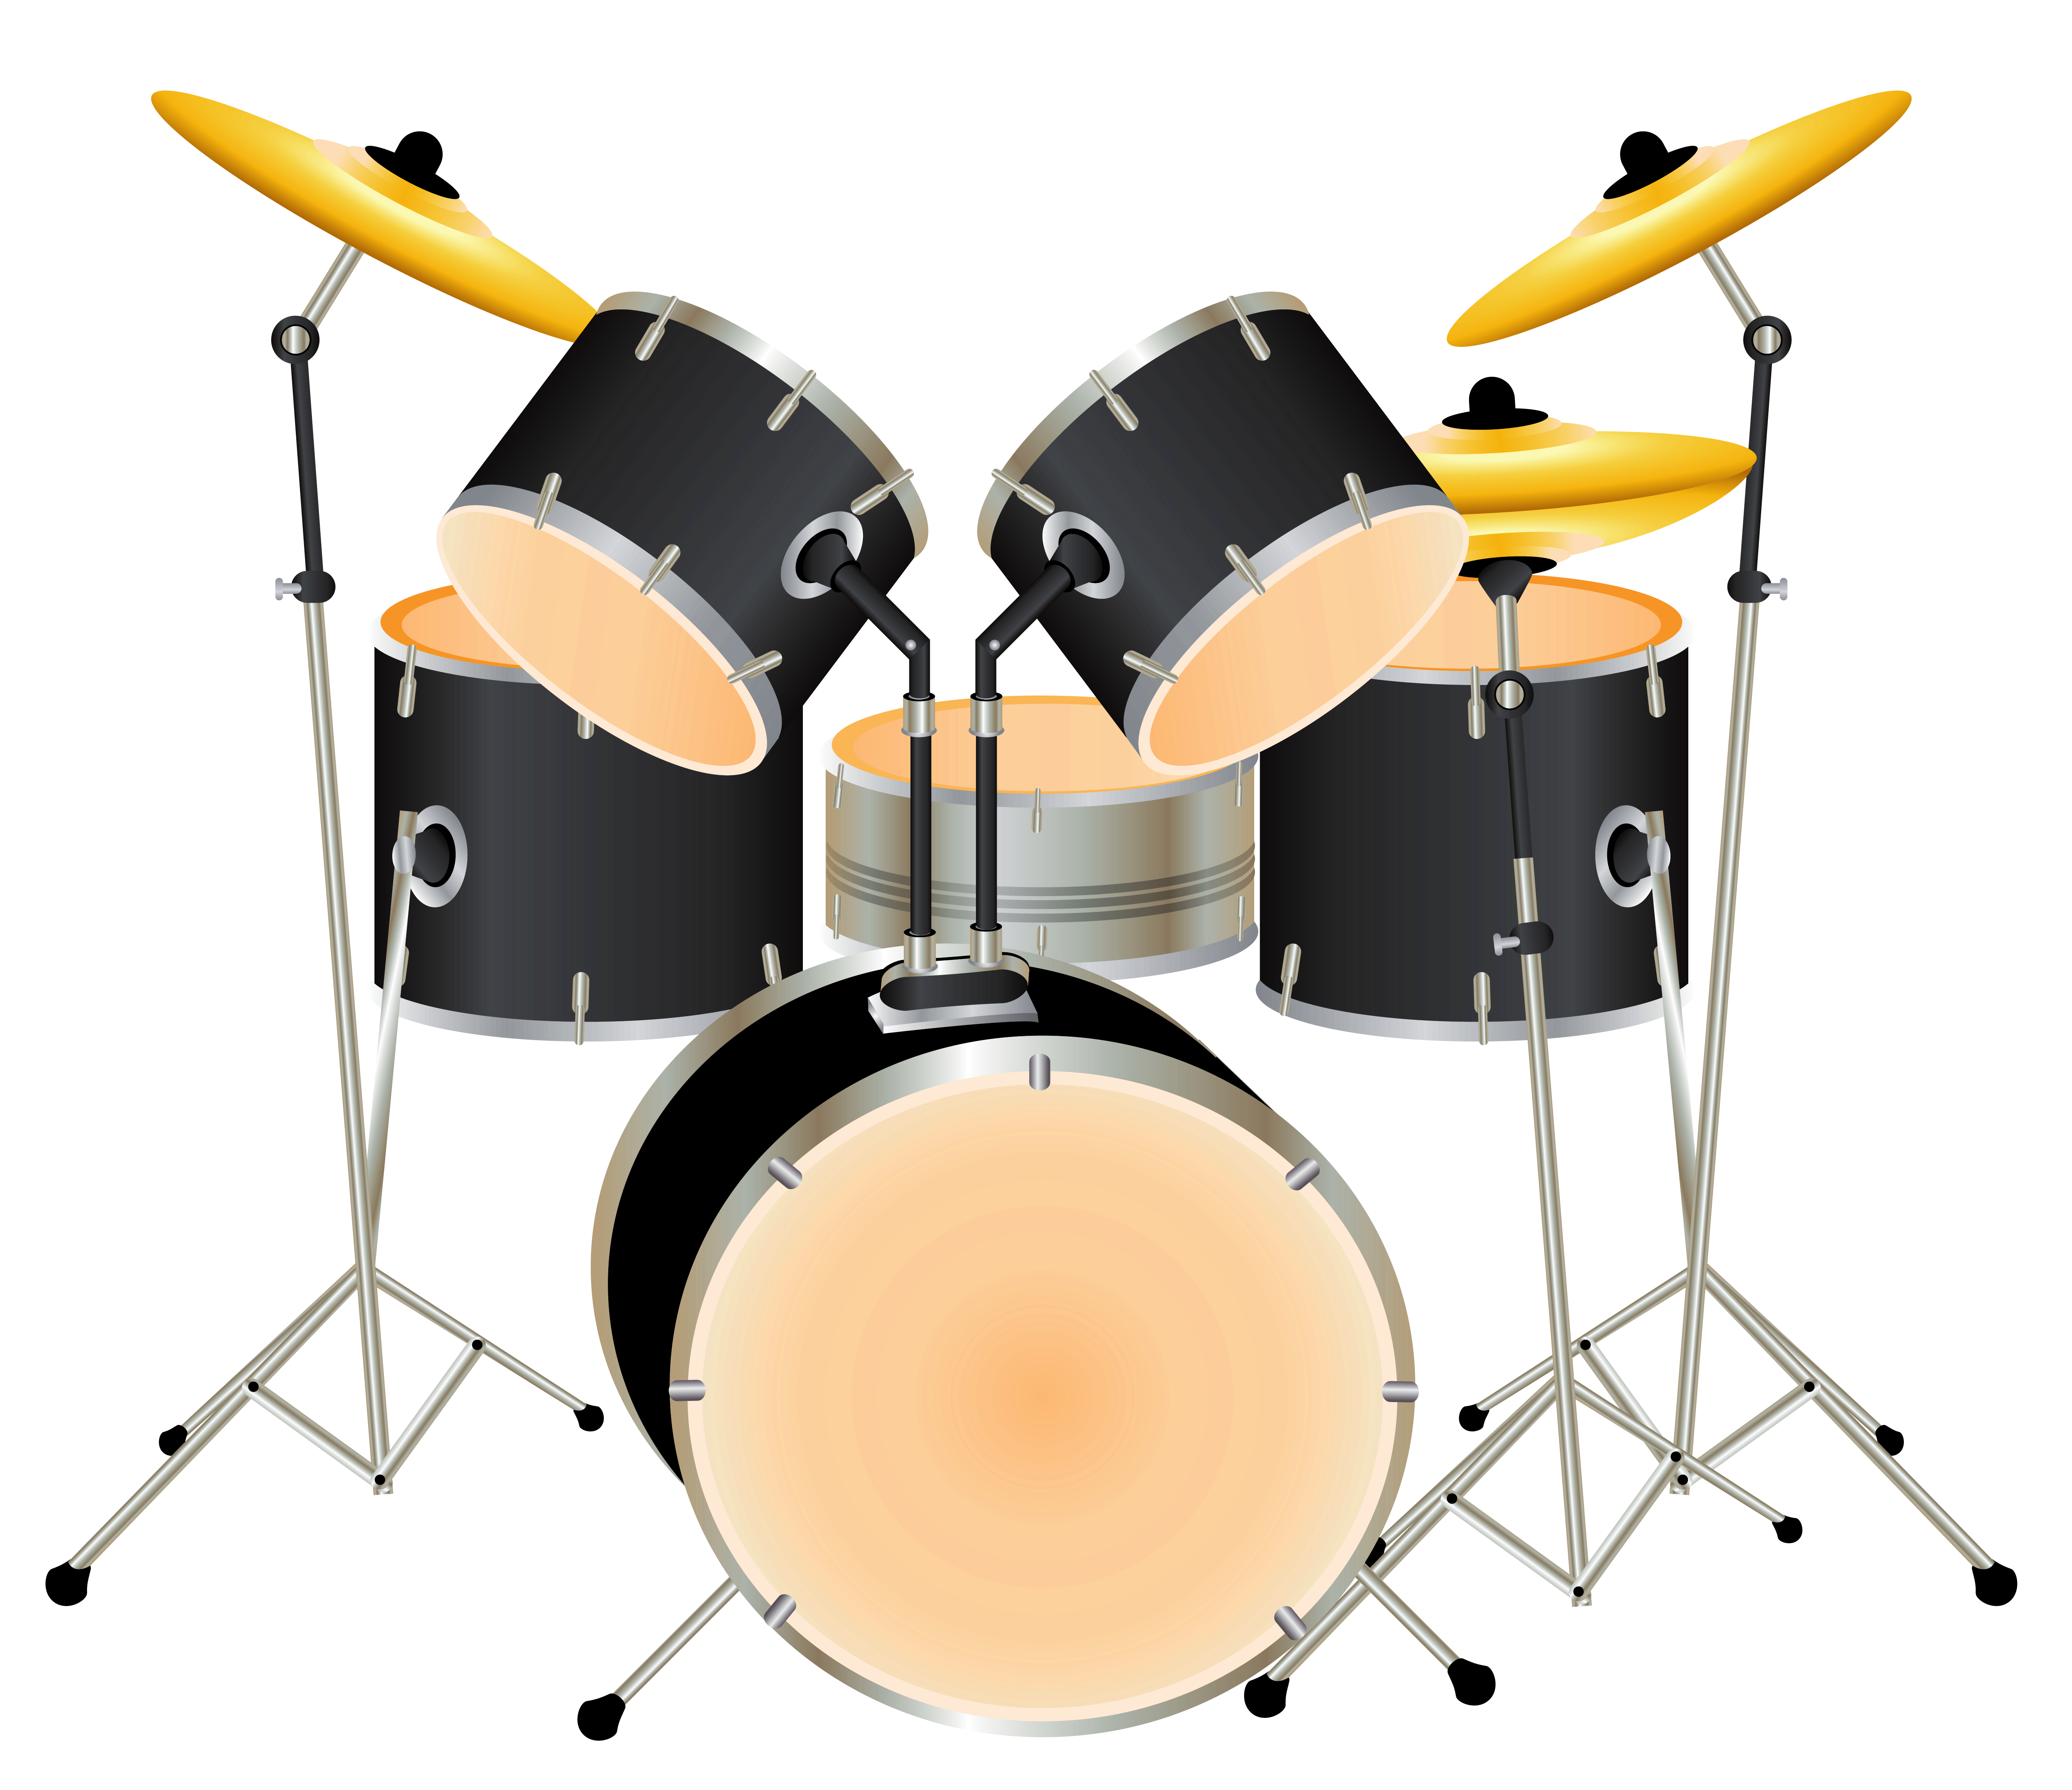 Drums clipart png. Drum kit picture gallery